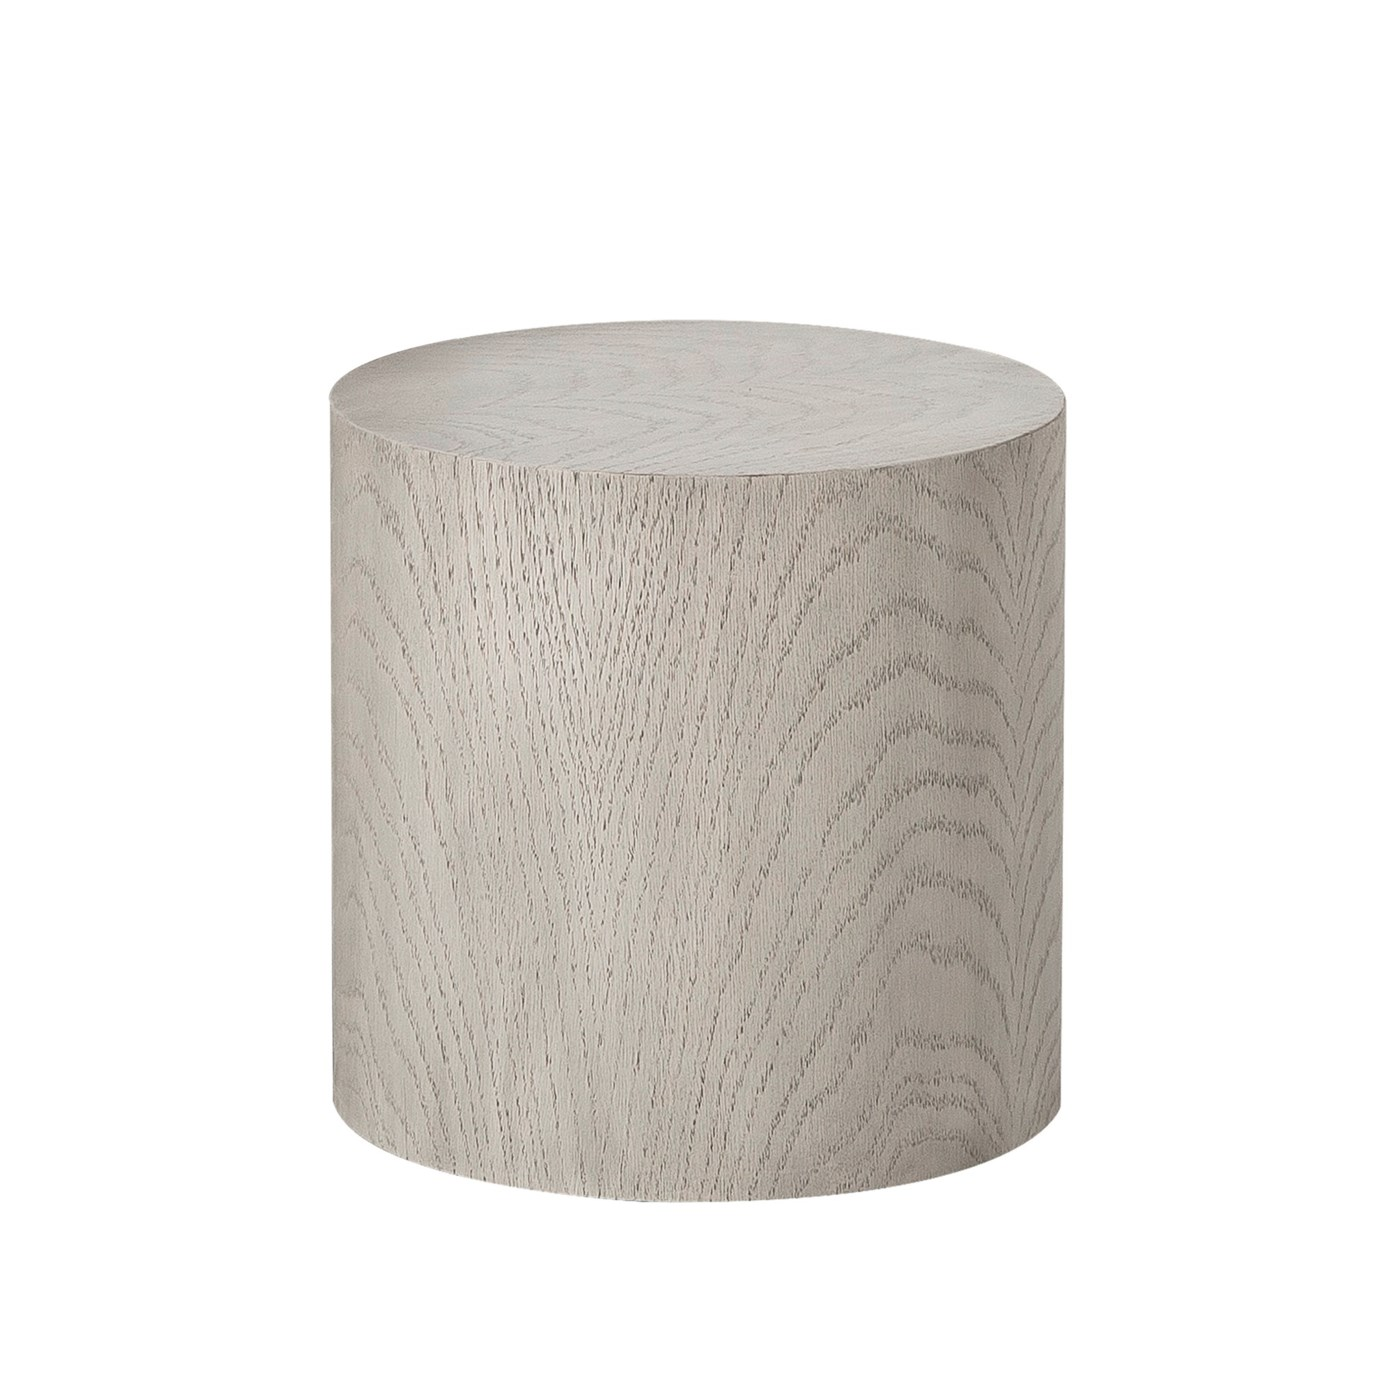 morgan accent table round oak side tables sonder living patio end with umbrella hole design for drawing room linen napkins bulk pole lamps covers square best furniture marble gold